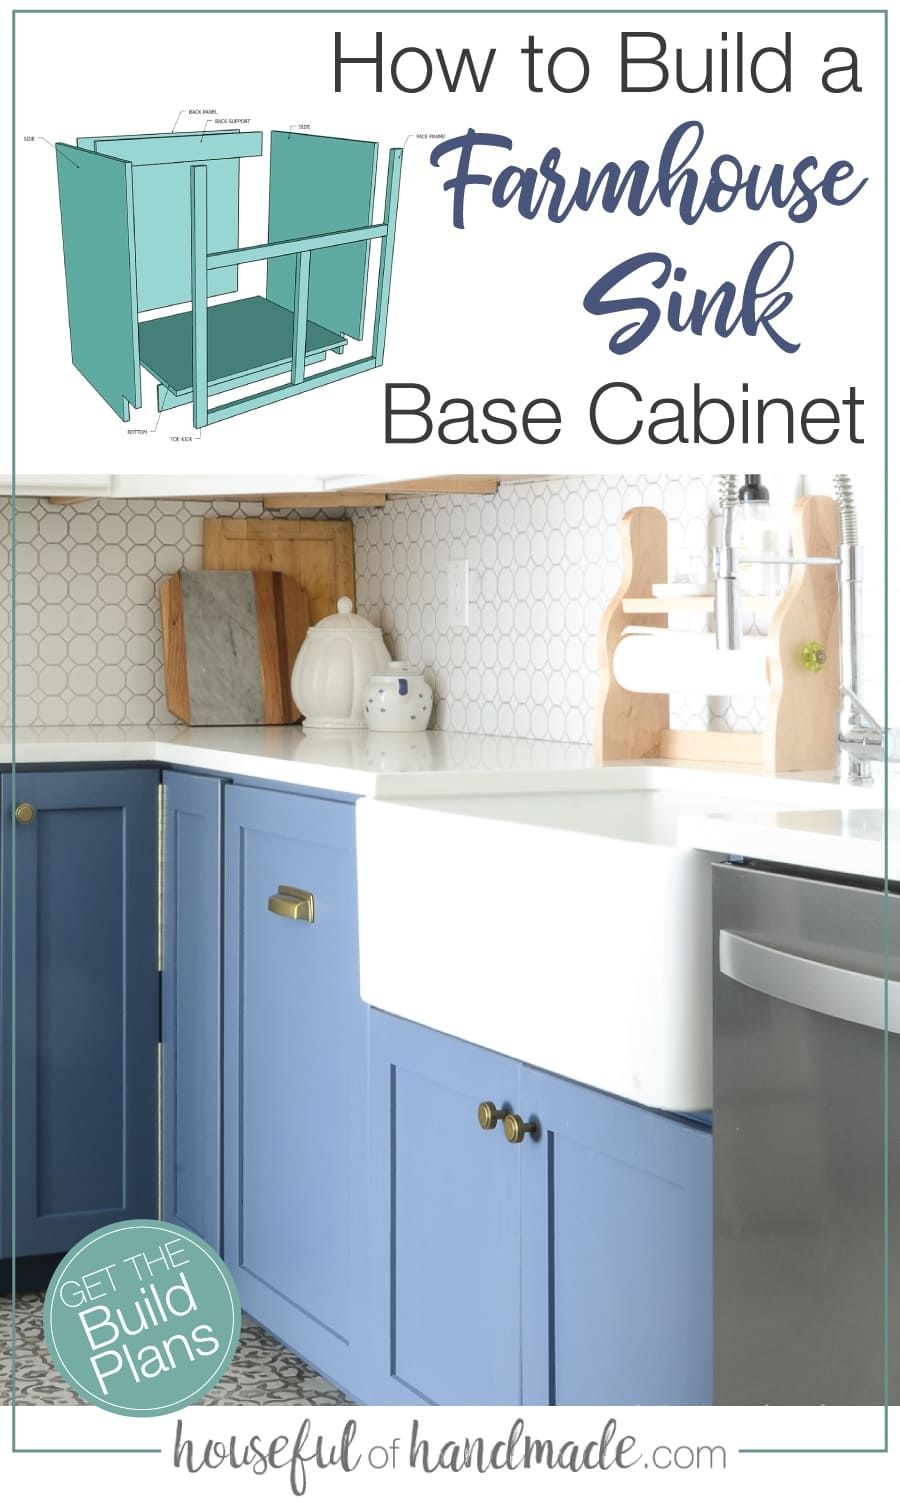 How To Build A Farmhouse Sink Base Cabinet In 2020 Building Kitchen Cabinets Farmhouse Sink Farmhouse Sink Kitchen